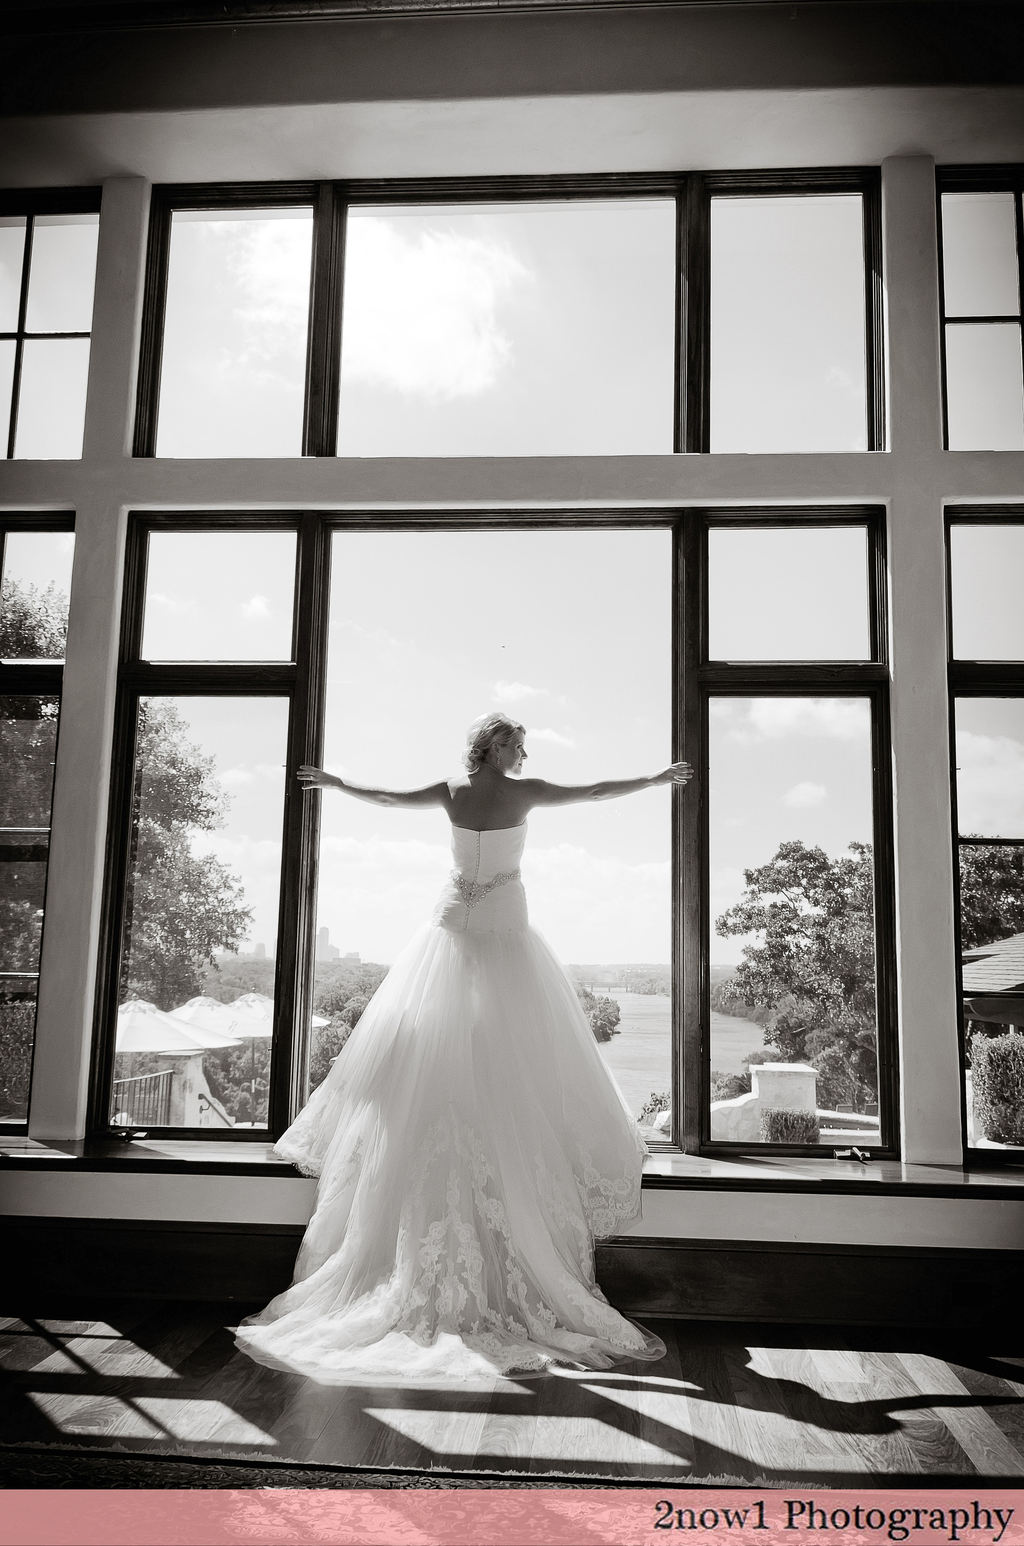 Austin_tx_bridal-hilary_sneak_peek-2now1photo.com_1.full